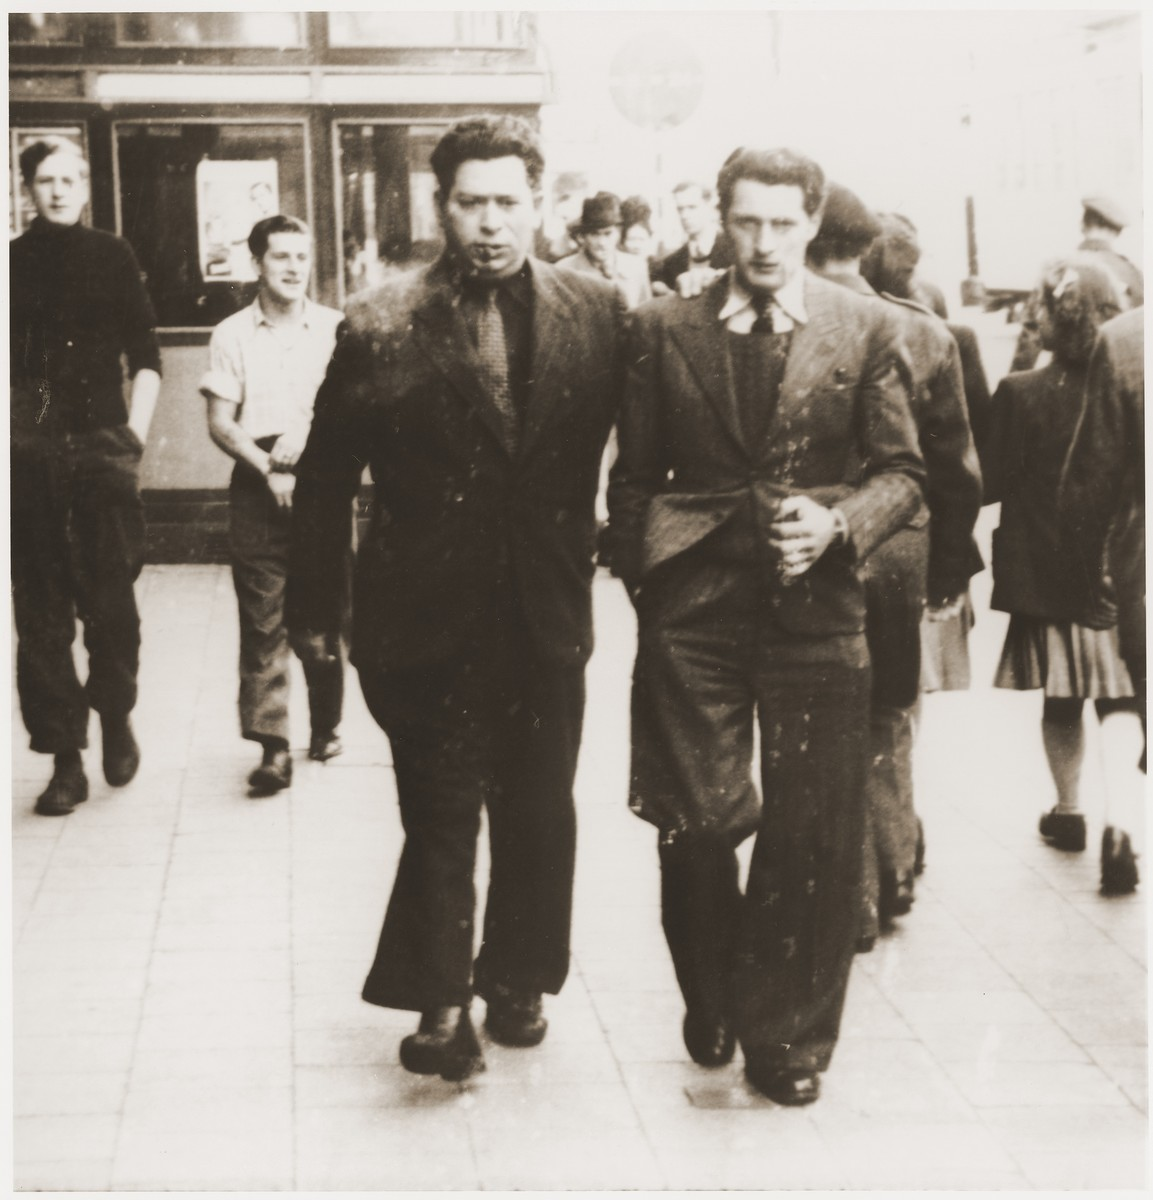 Two young Jewish men walk along a street in Antwerp, Belgium.  Pictured are Simon Rosenbaum (left) and his brother-in-law, Maurice Pomerantz (right).